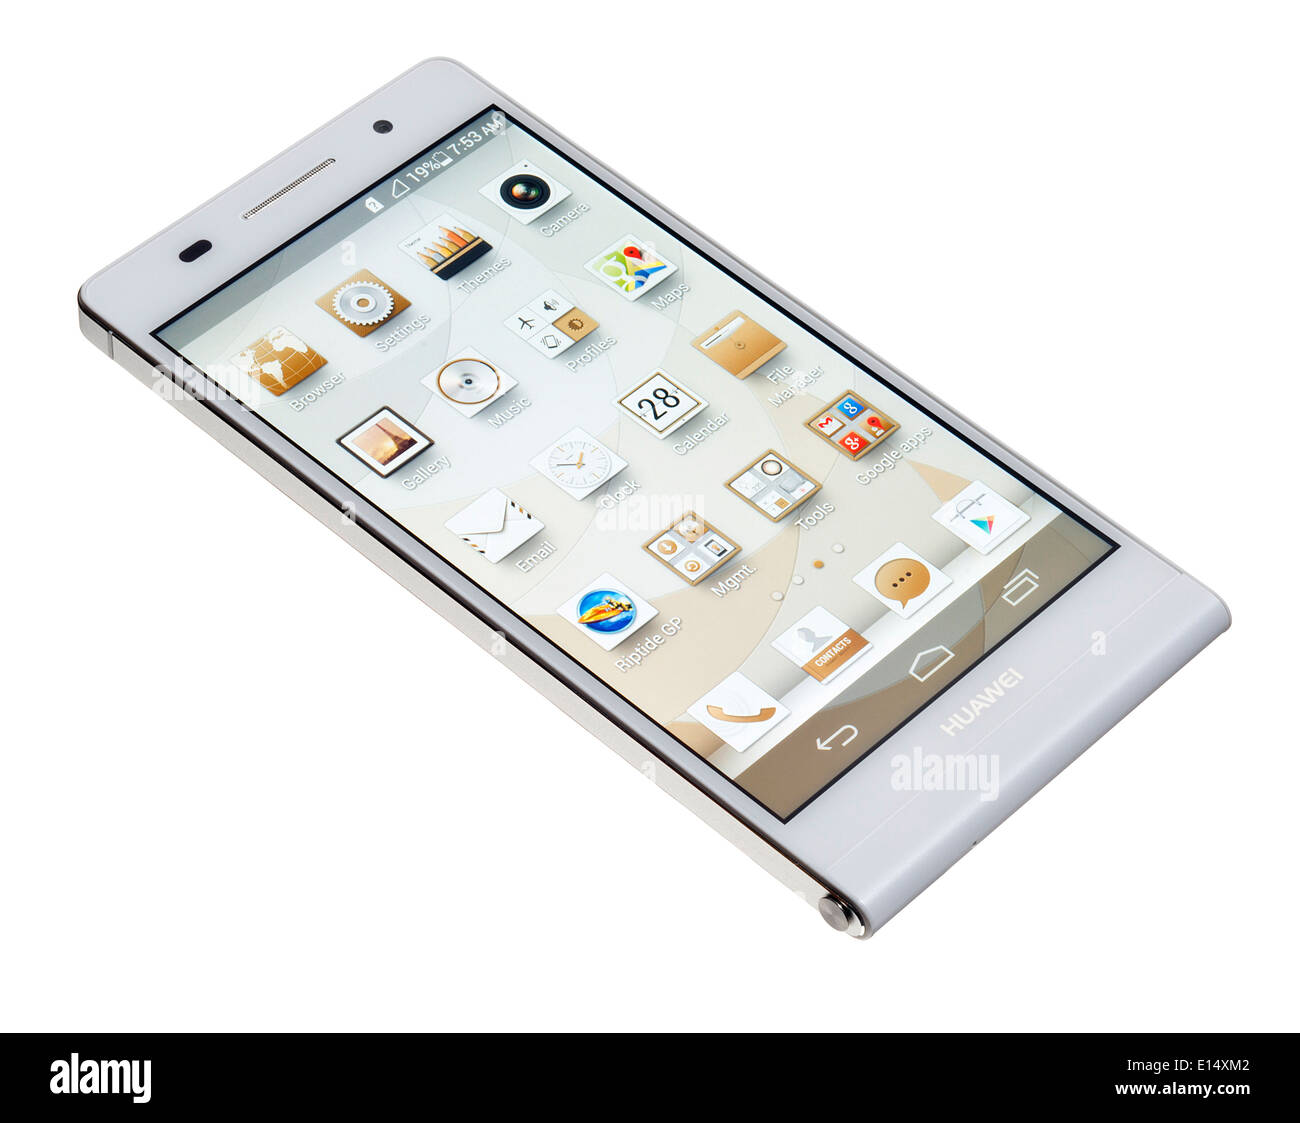 Huawei Ascend smartphone - Stock Image